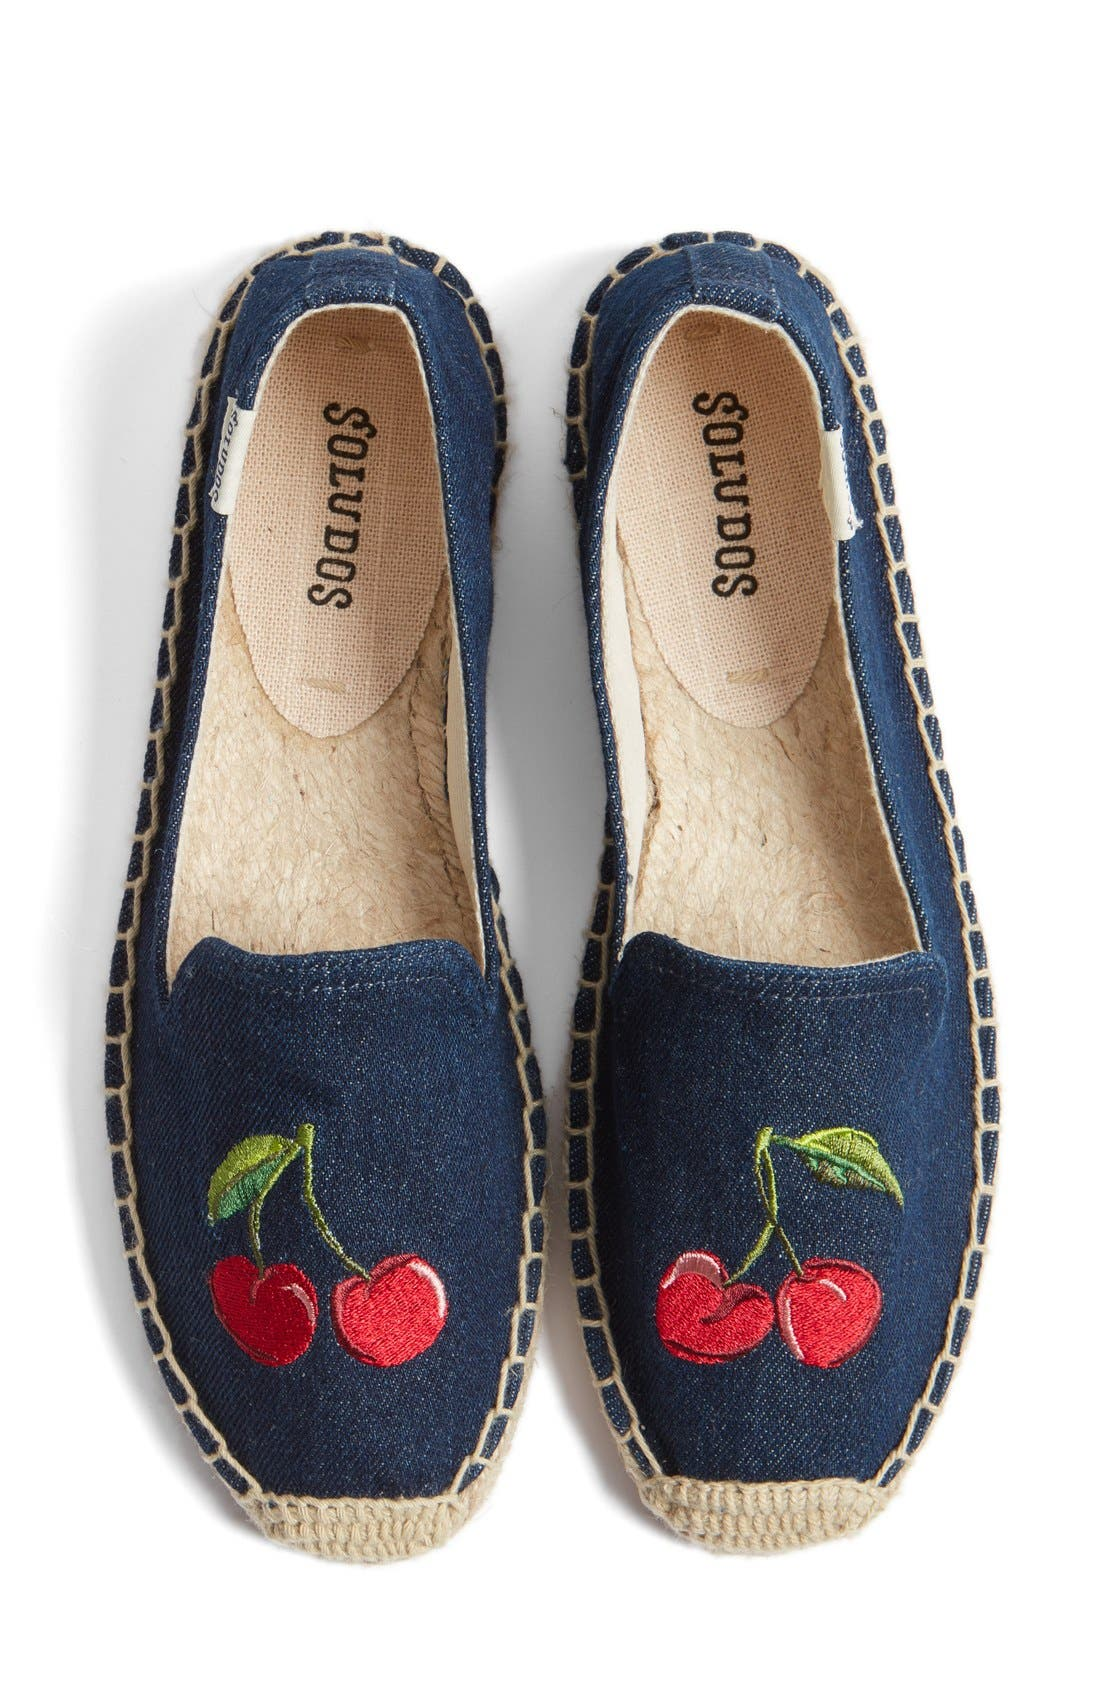 Main Image - Soludos 'Cherries' Embroidered Espadrille Slip-On (Women)